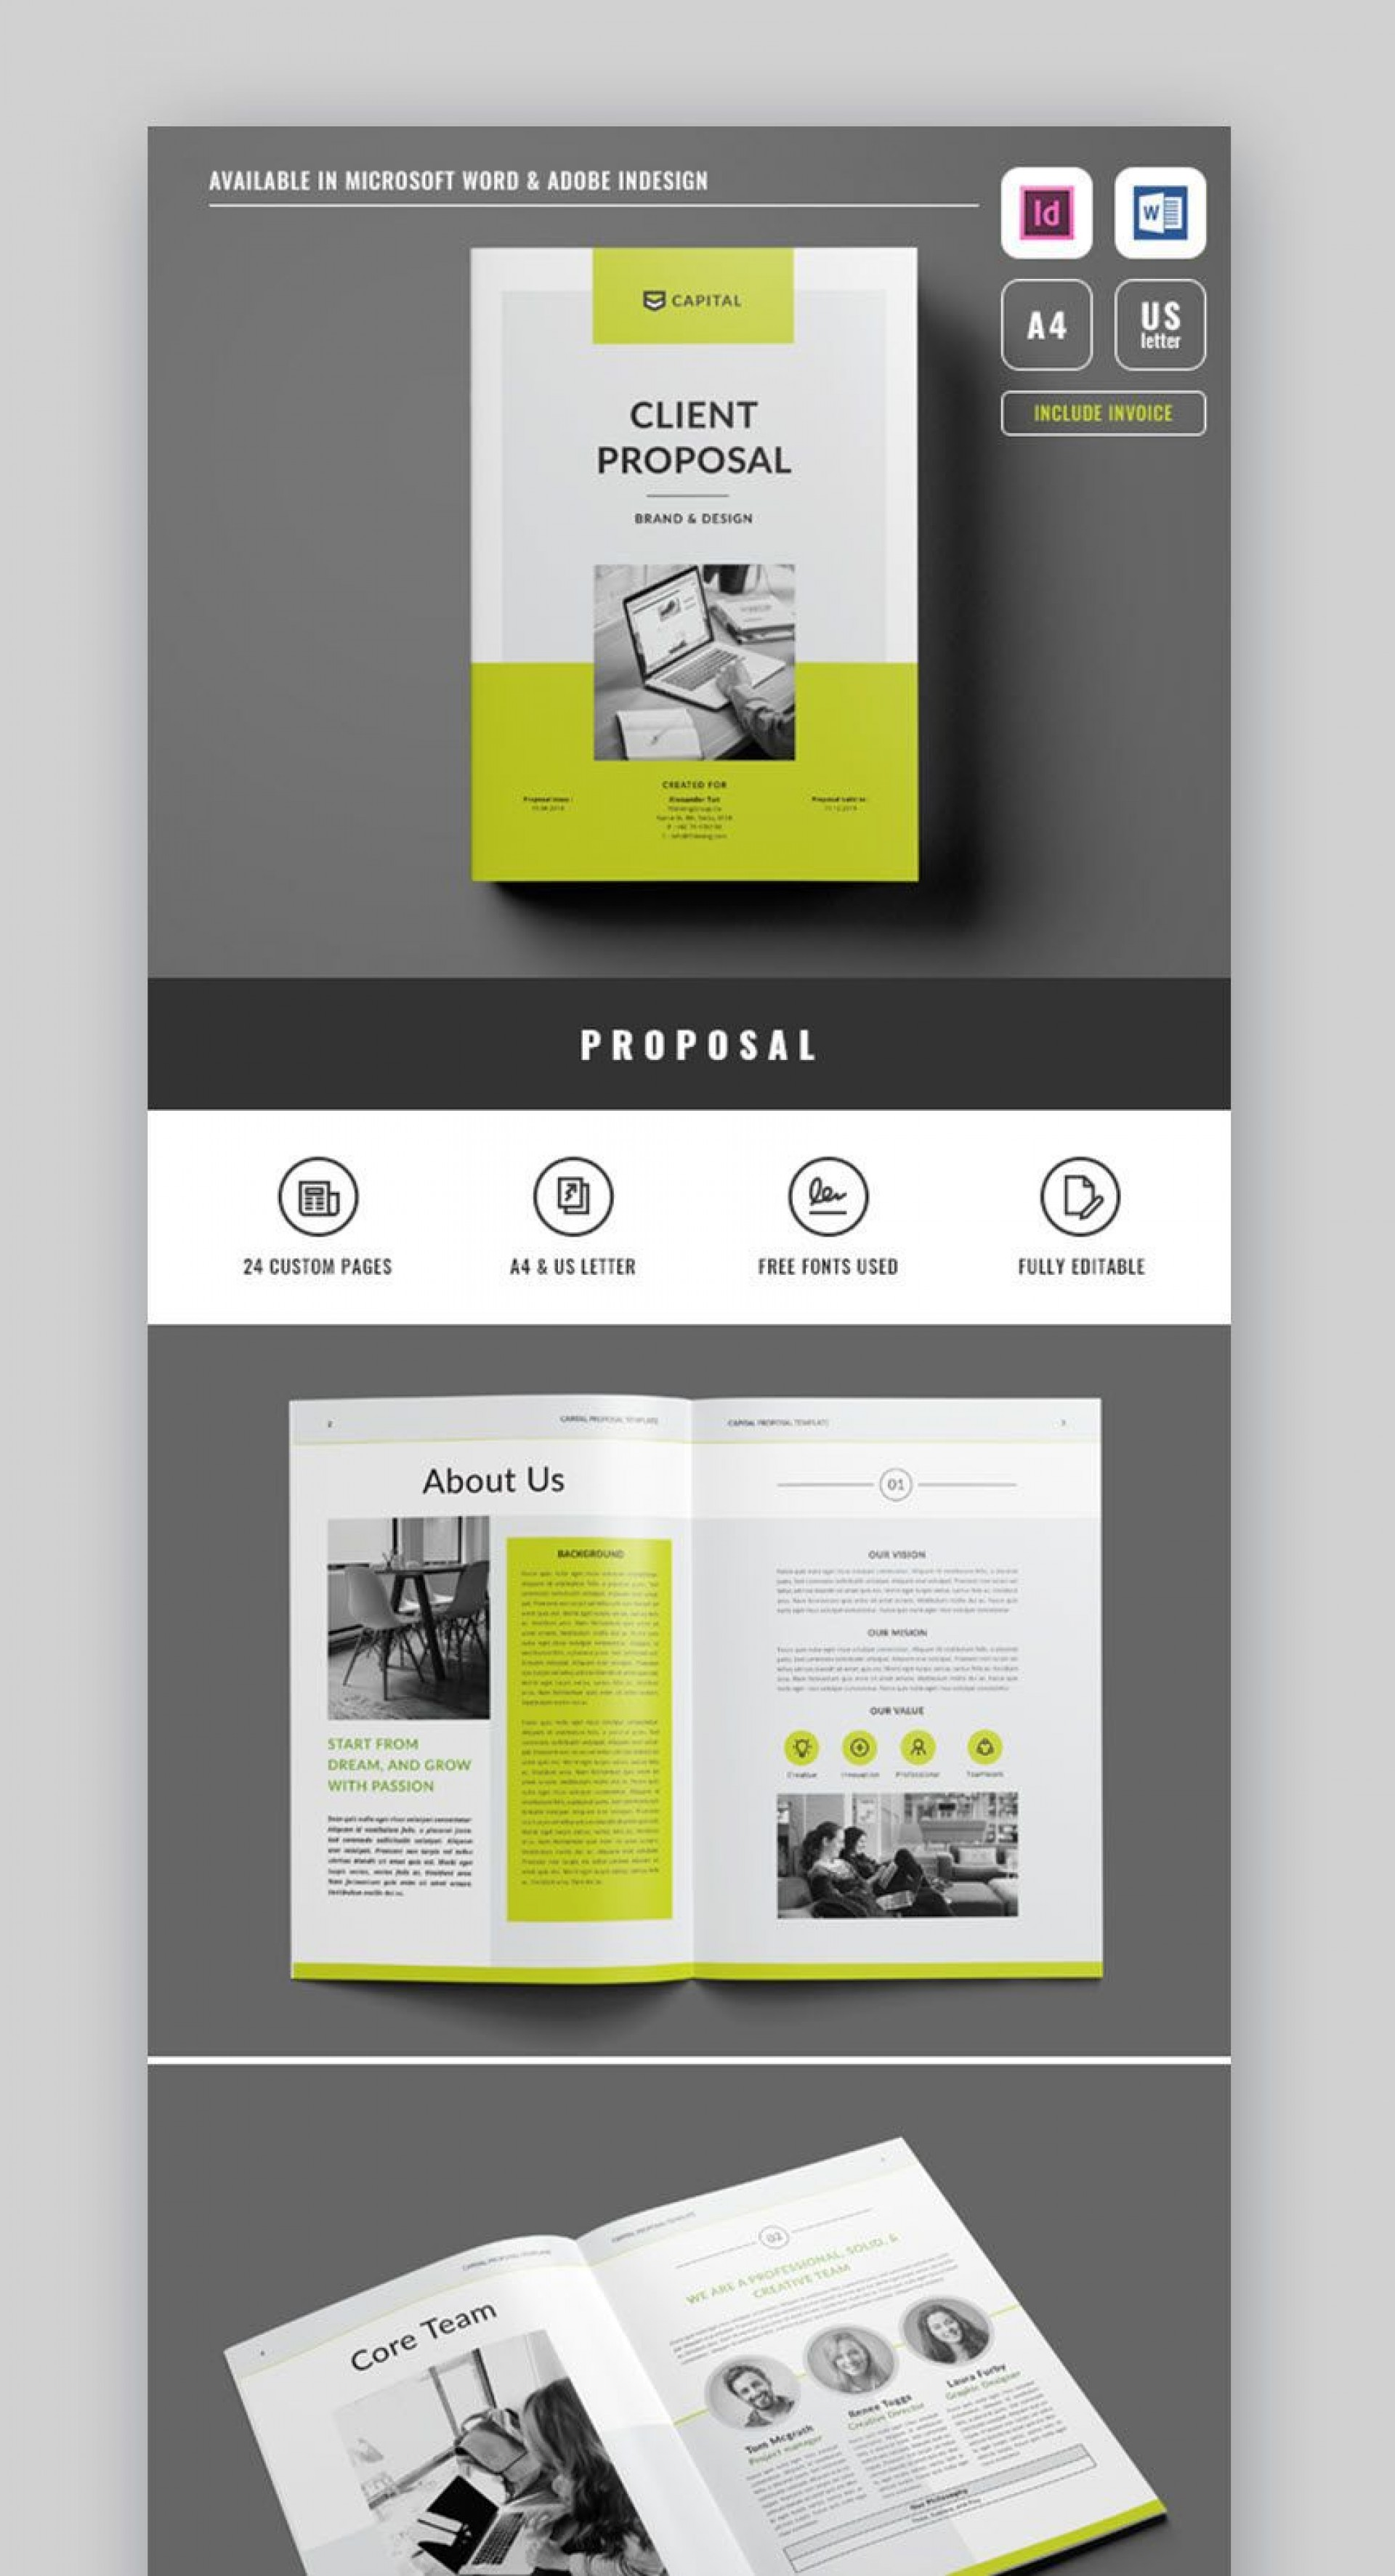 004 Dreaded Microsoft Word Proposal Template Free Design  Project Download Budget1920